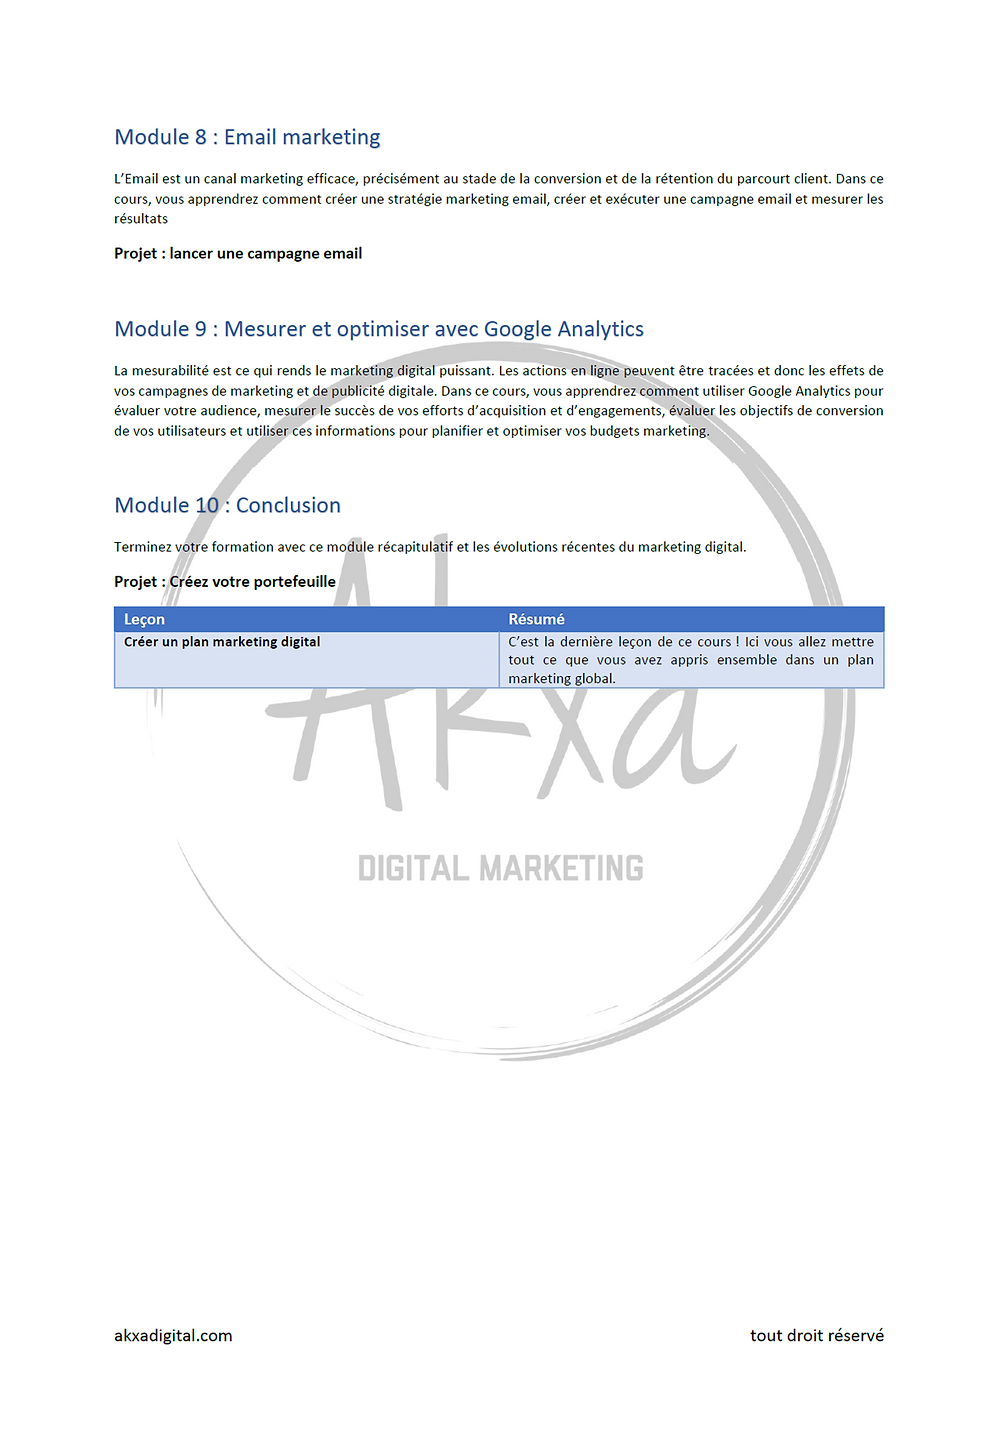 syllabus du programme ADMA (Akxa Digital Marketing Academy)